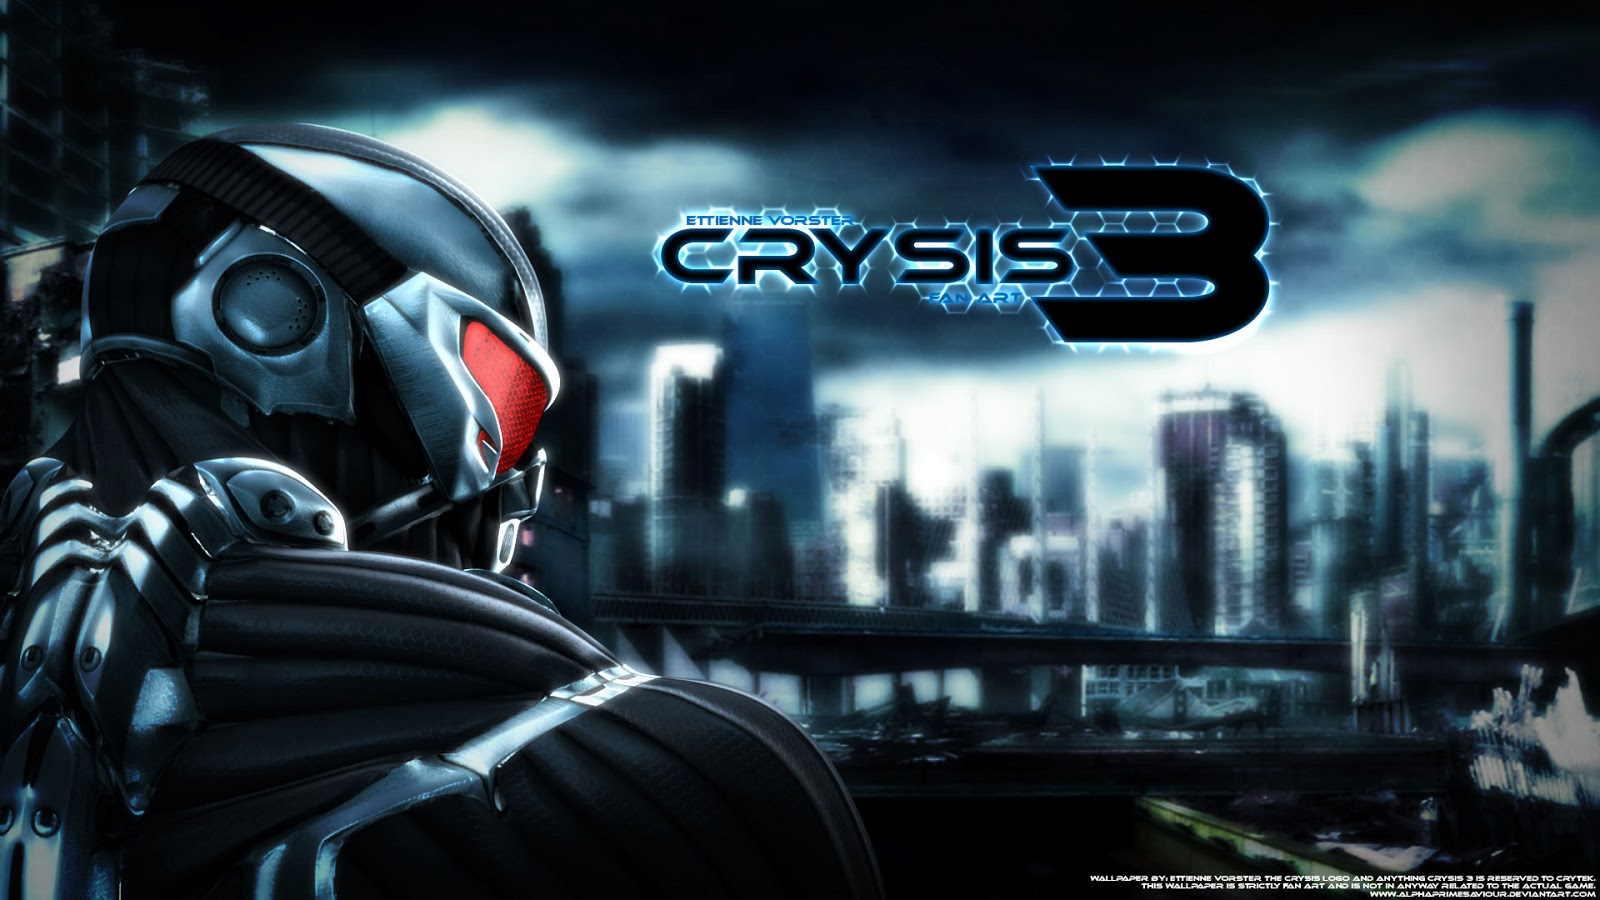 crysis 3 free download full version with crack for pc game